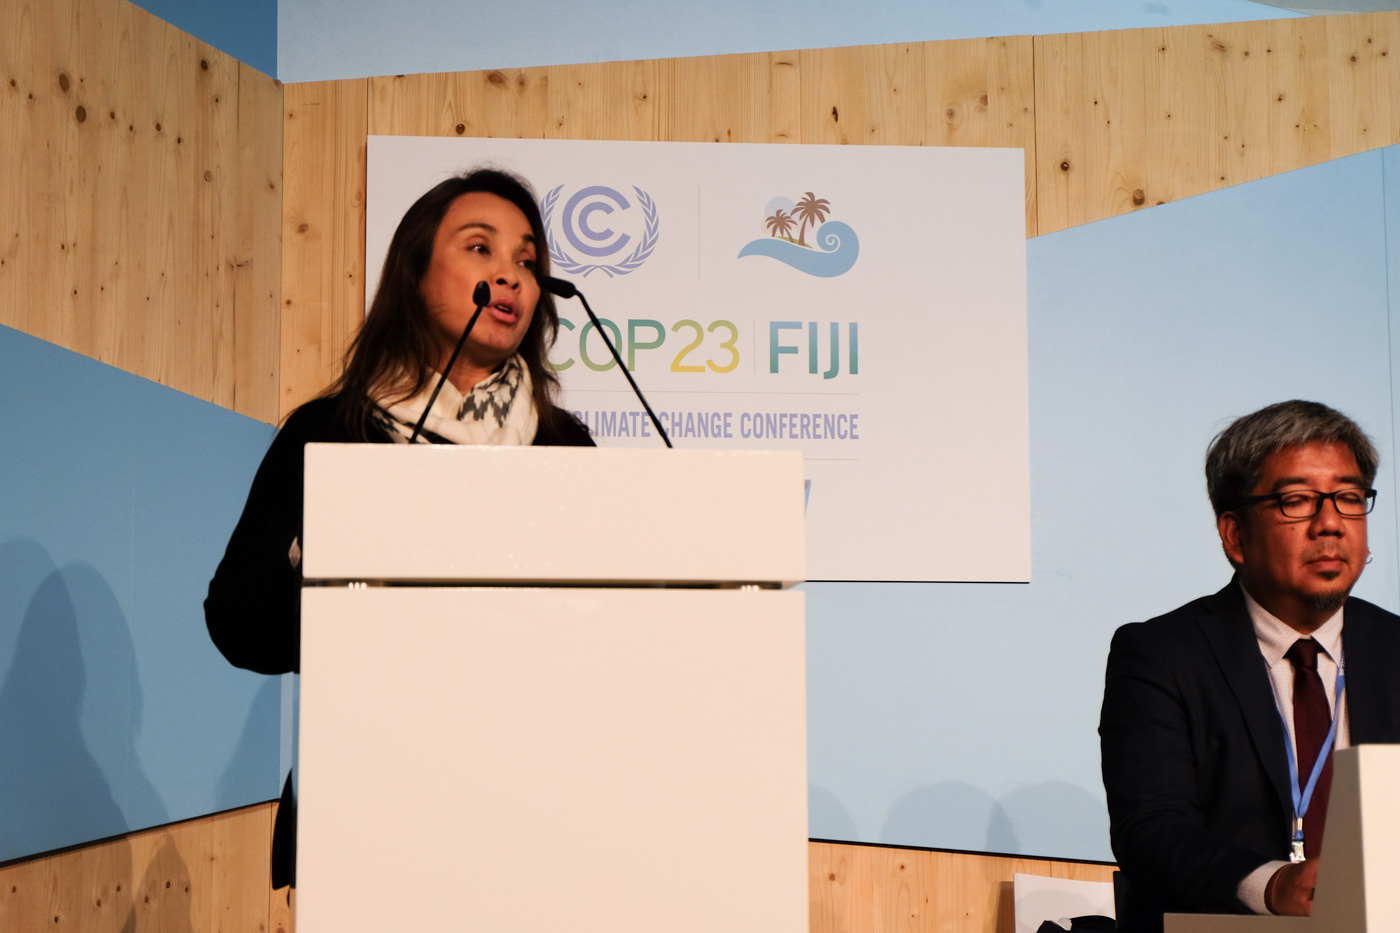 COP23. Senator Loren Legarda leads the Philippine delegation at the 23rd UN Climate Change Conference in Bonn, Germany